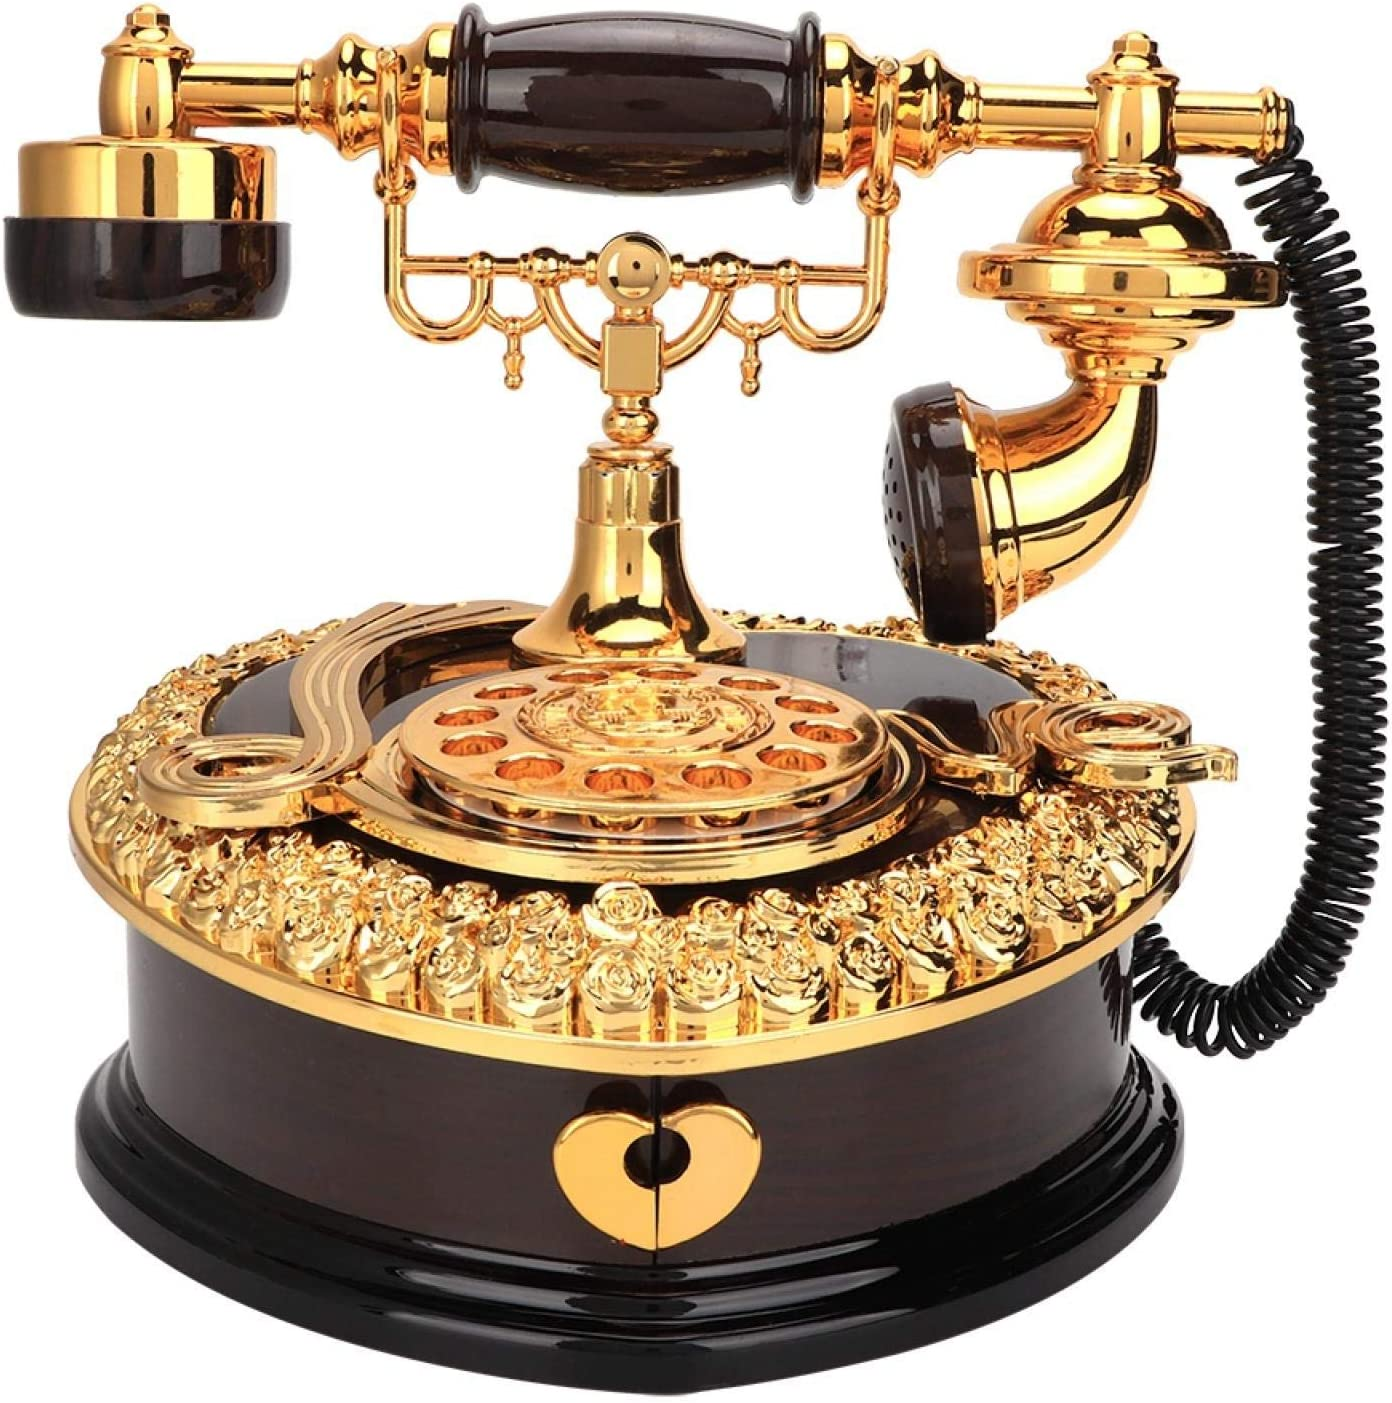 Heart-Shaped Phone Music Box Decoration Ranking TOP11 Home Ornaments Birthday Max 87% OFF